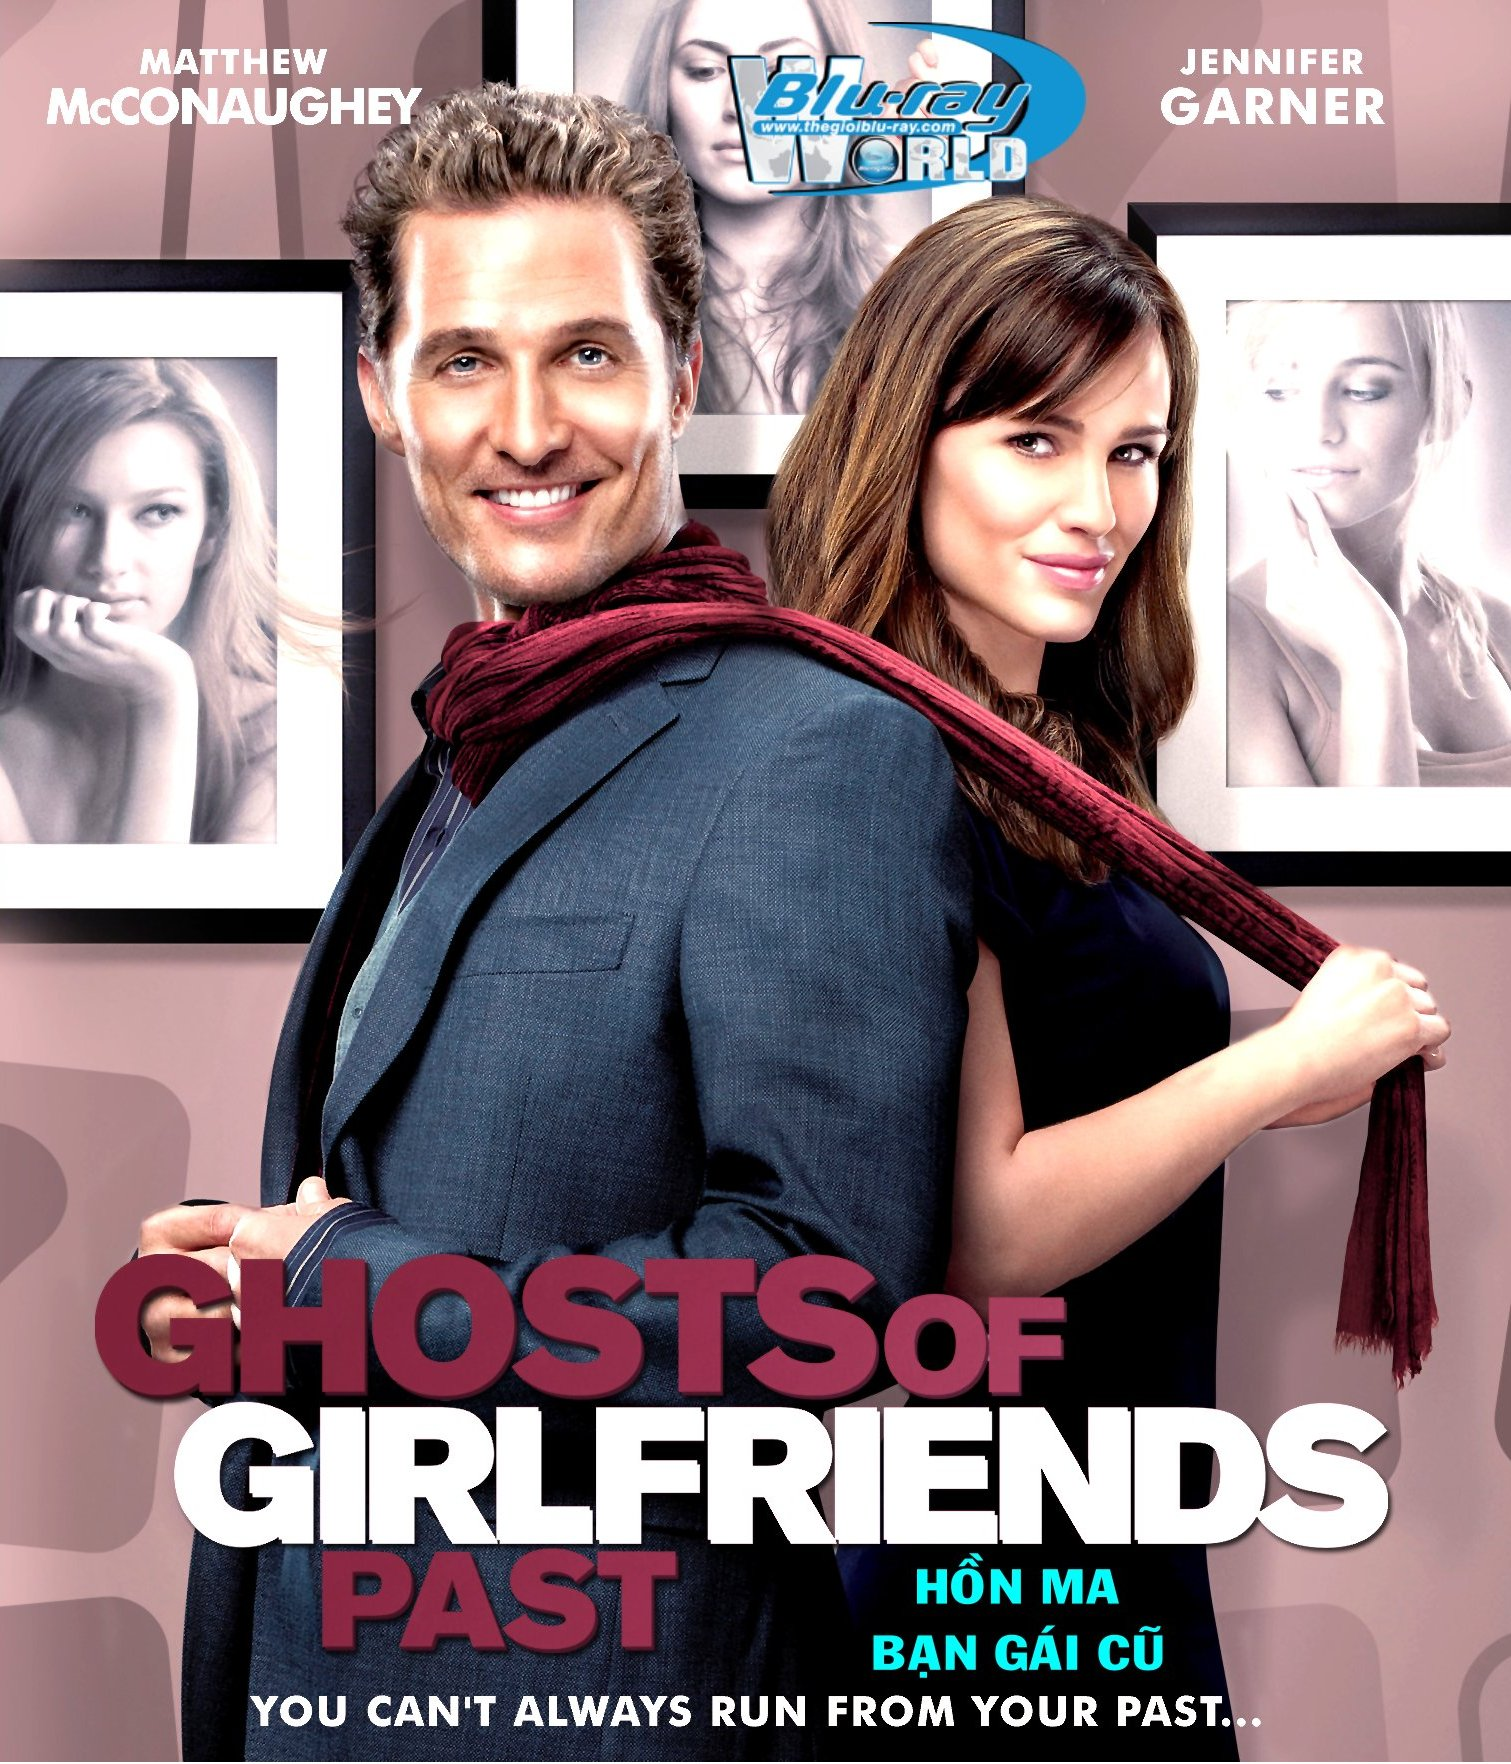 B1666. Ghosts of Girlfriends Past  - HỒN MA BẠN GÁI CŨ 2D 25G (DTS-HD MA 5.1)